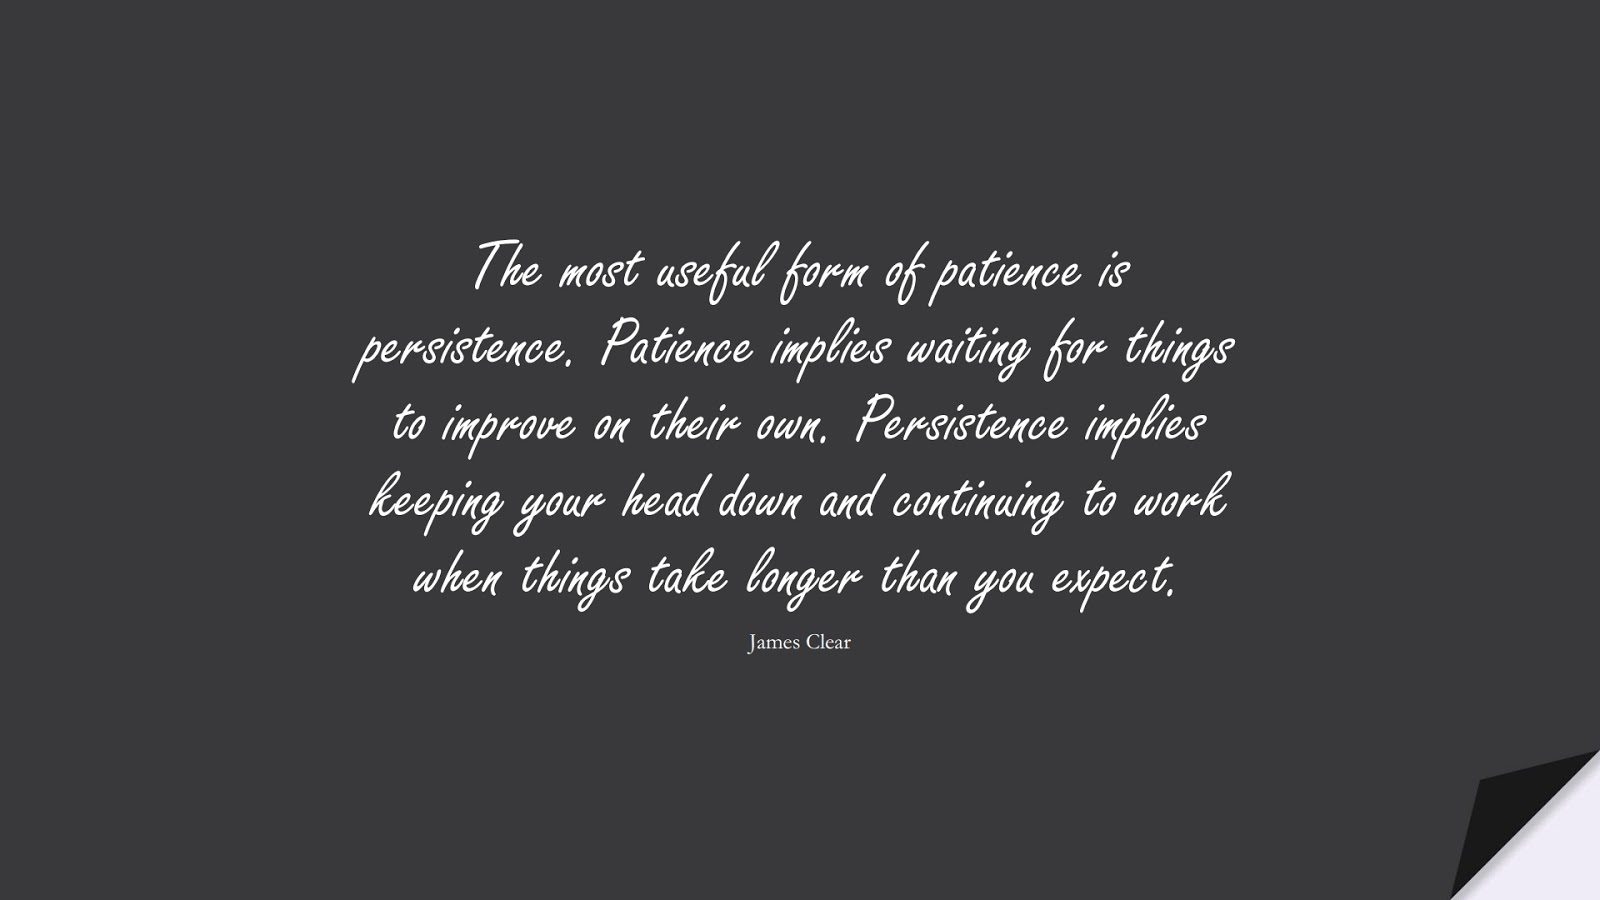 The most useful form of patience is persistence. Patience implies waiting for things to improve on their own. Persistence implies keeping your head down and continuing to work when things take longer than you expect. (James Clear);  #PerseveranceQuotes